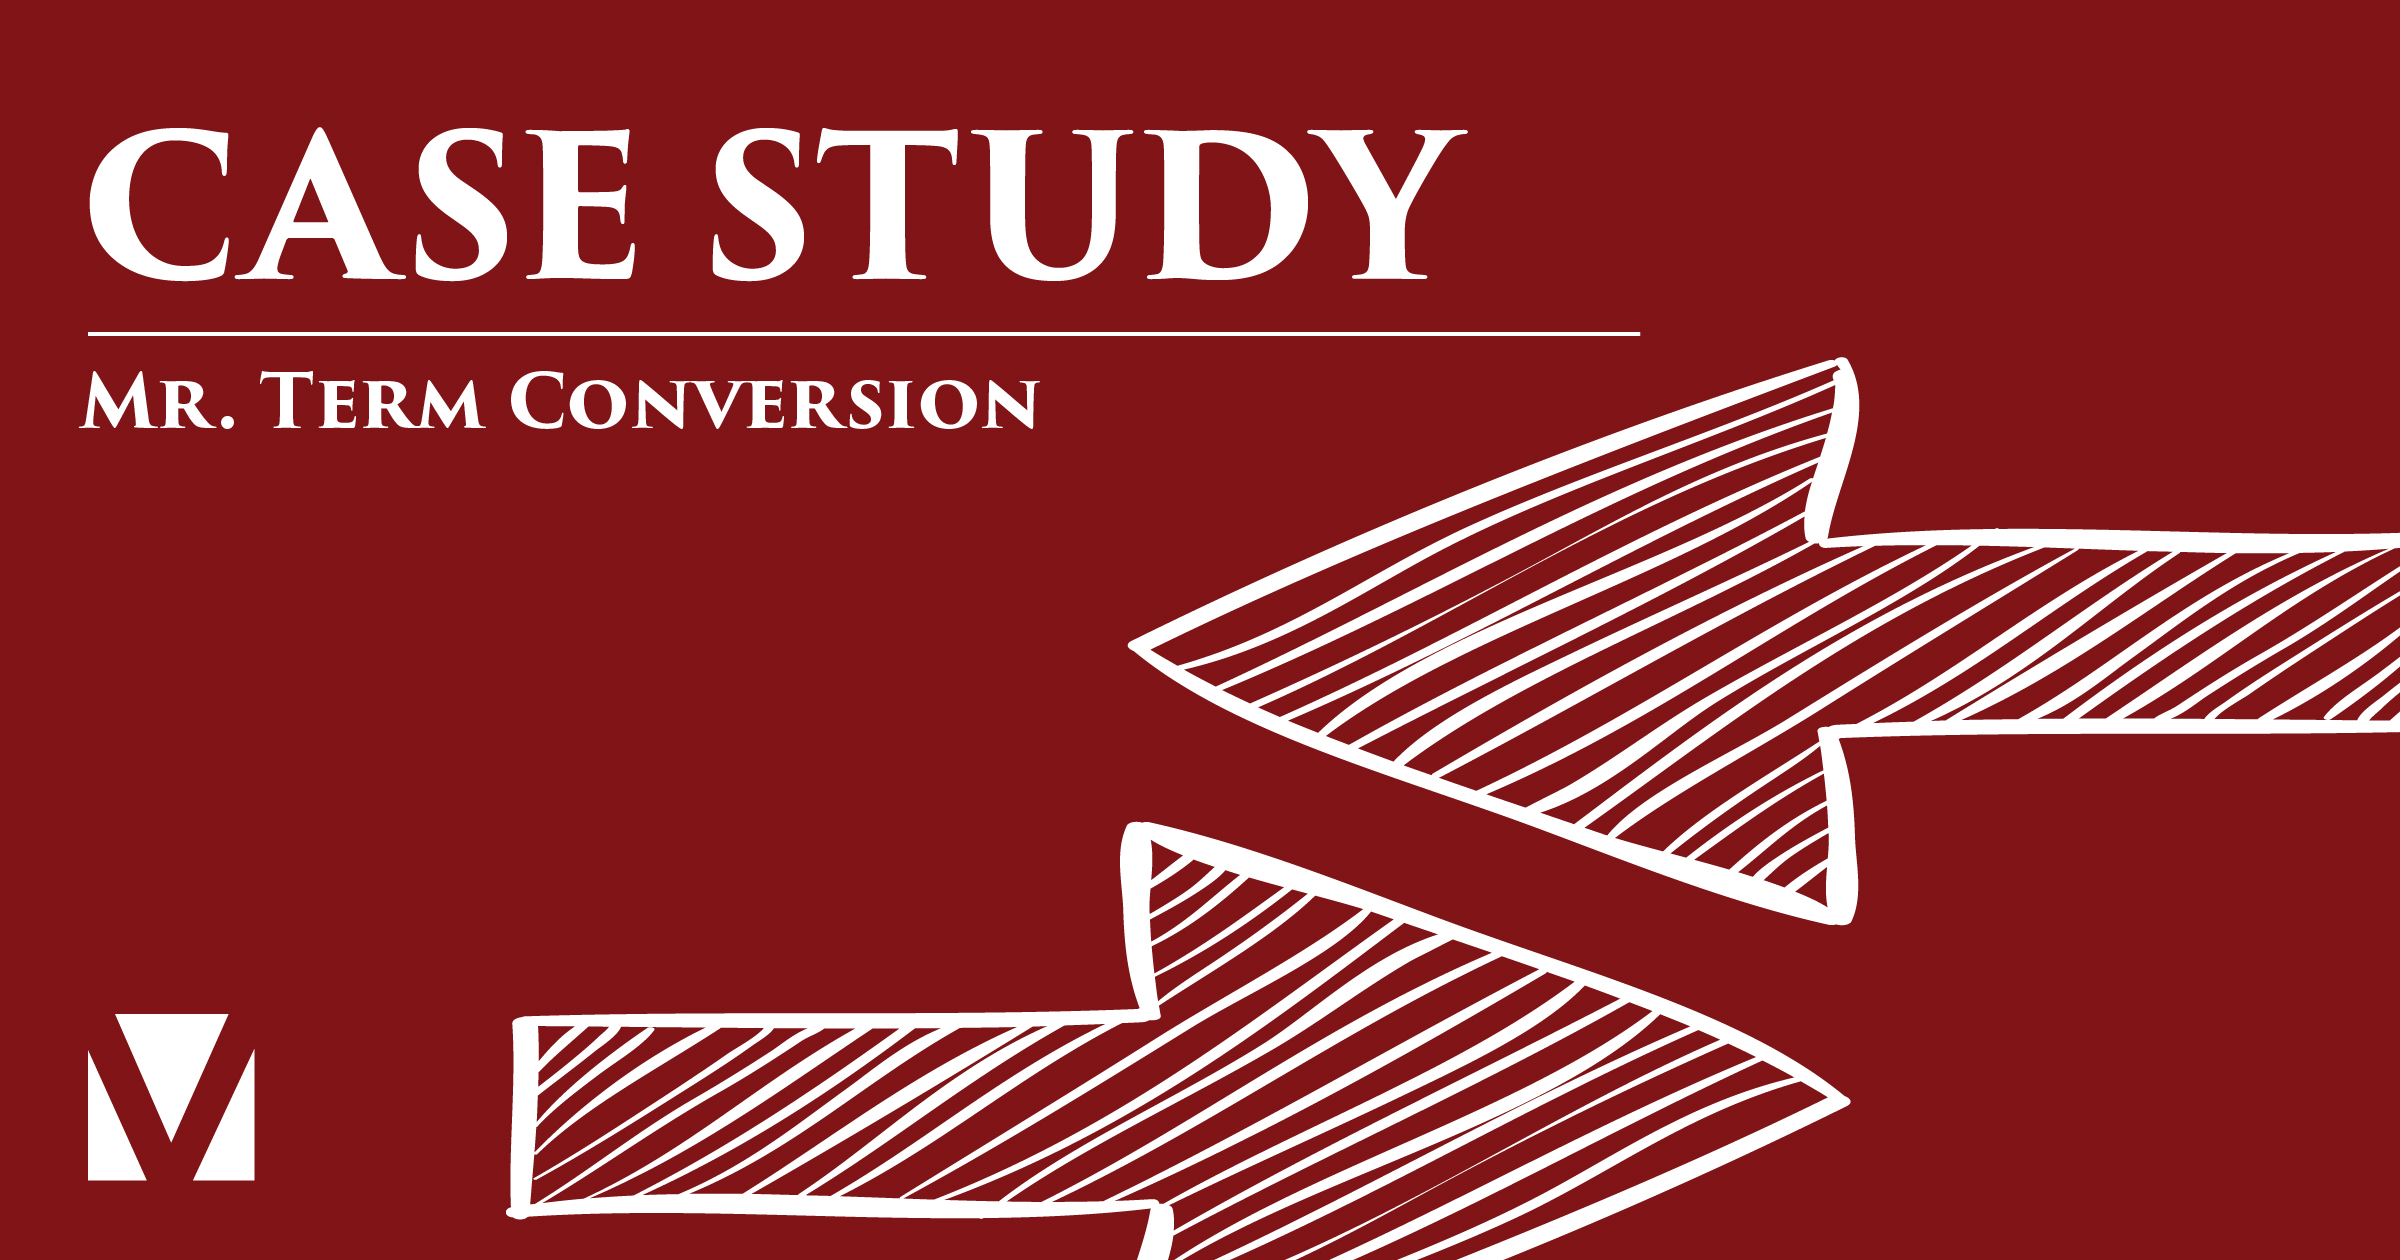 Case Study: Mr. Term Conversion